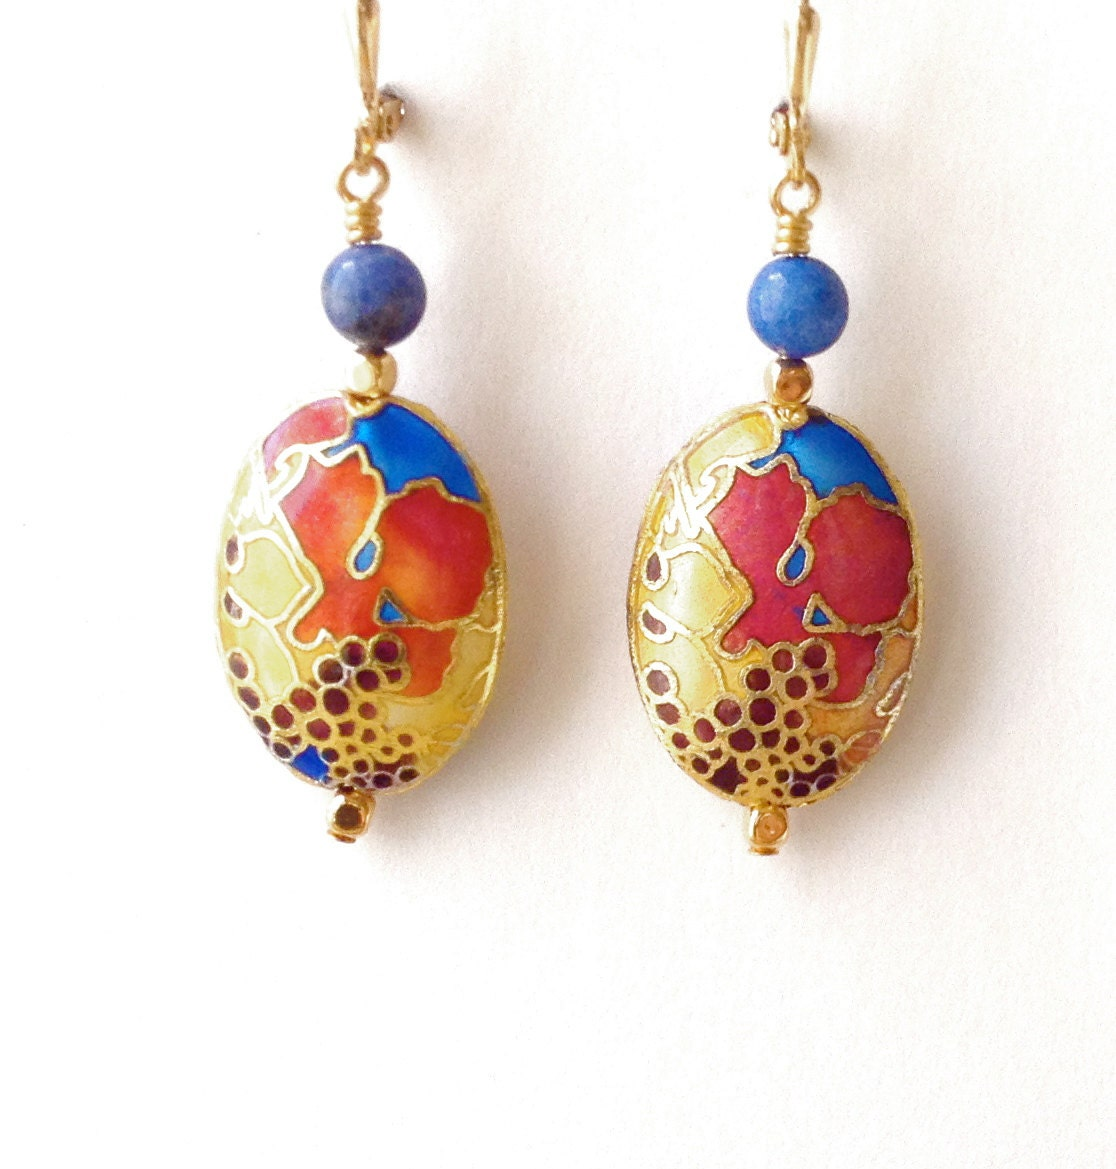 cloisonne earrings made nouveau cloisonne earrings